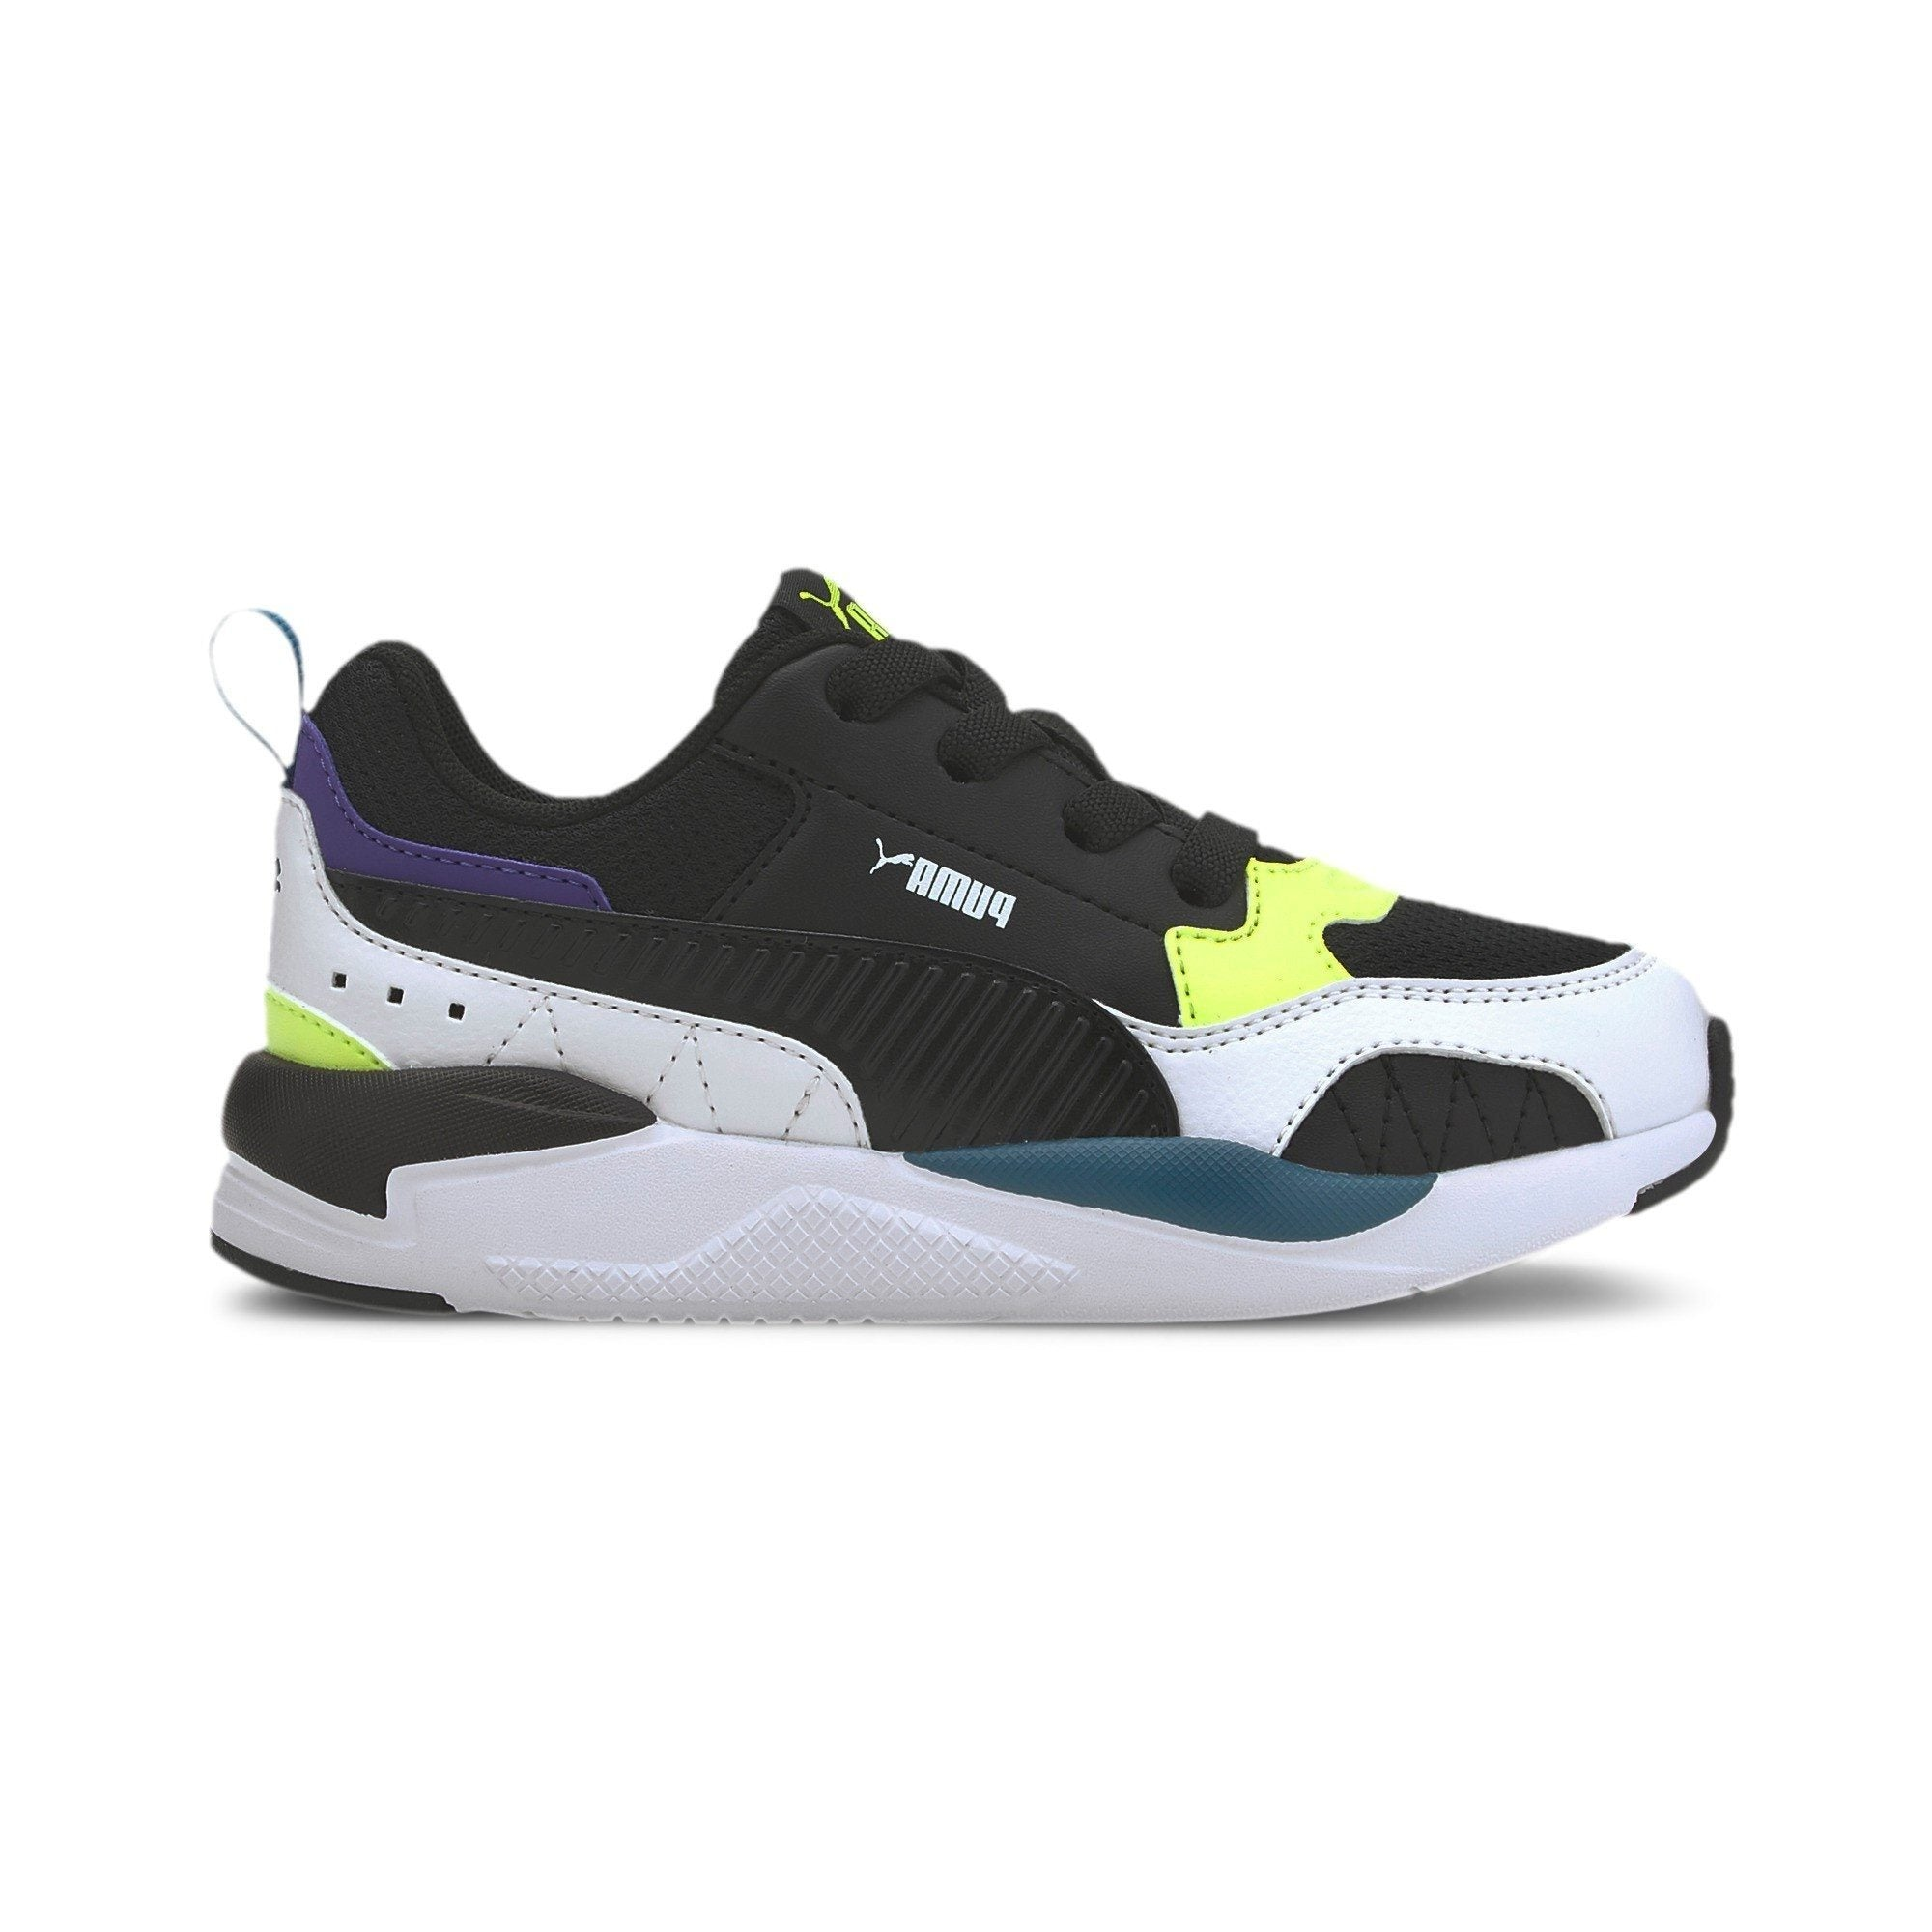 Puma Kids X-Ray 2 Square AC PS - Black/White/Yellow/Blue SP-Footwear-Kids Puma